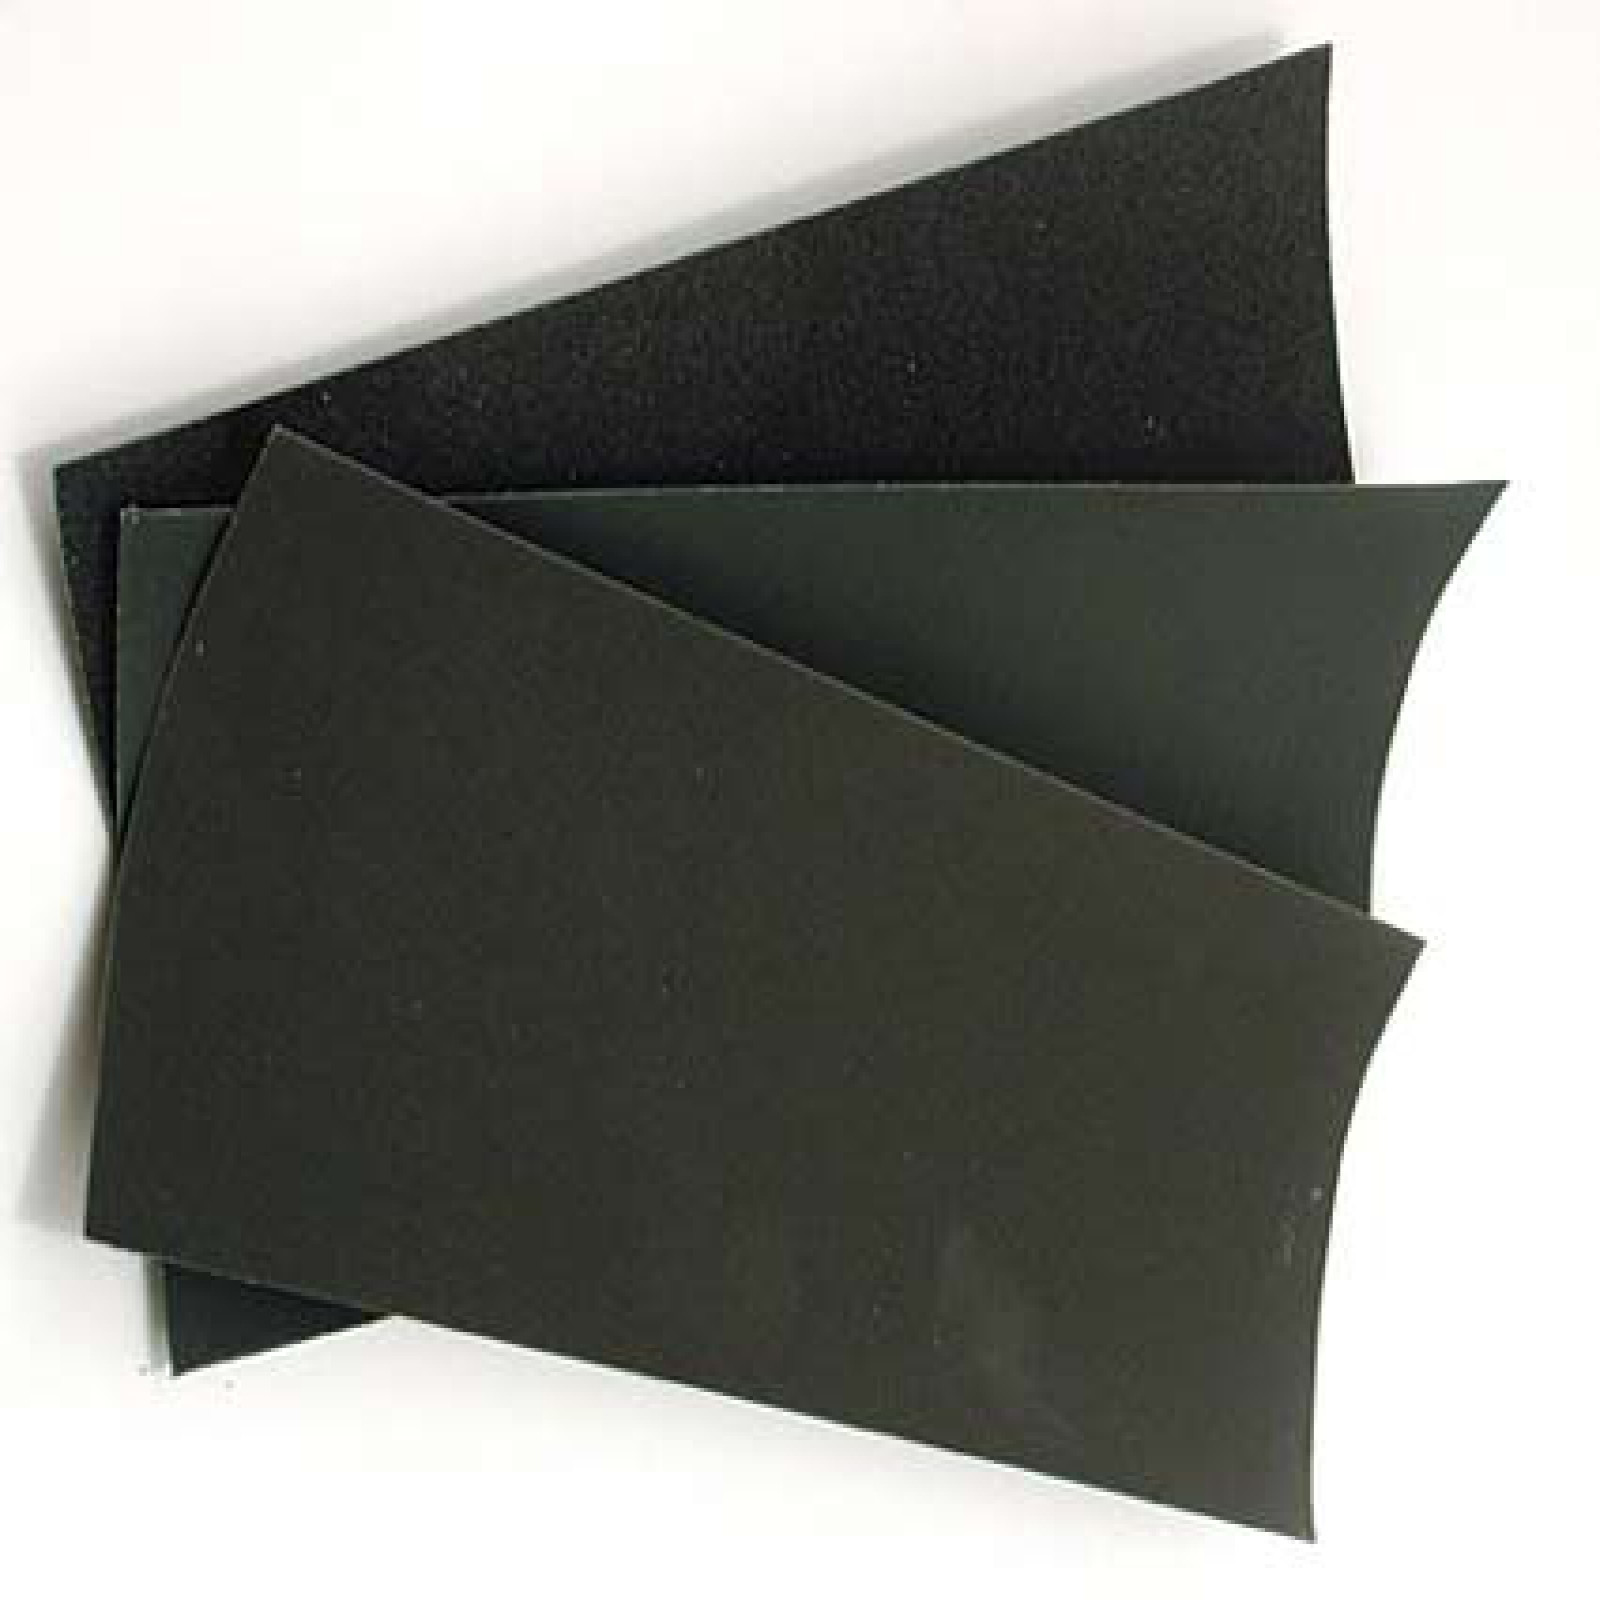 MULTI-PACK SANDPAPER 120-240-400 GRIT